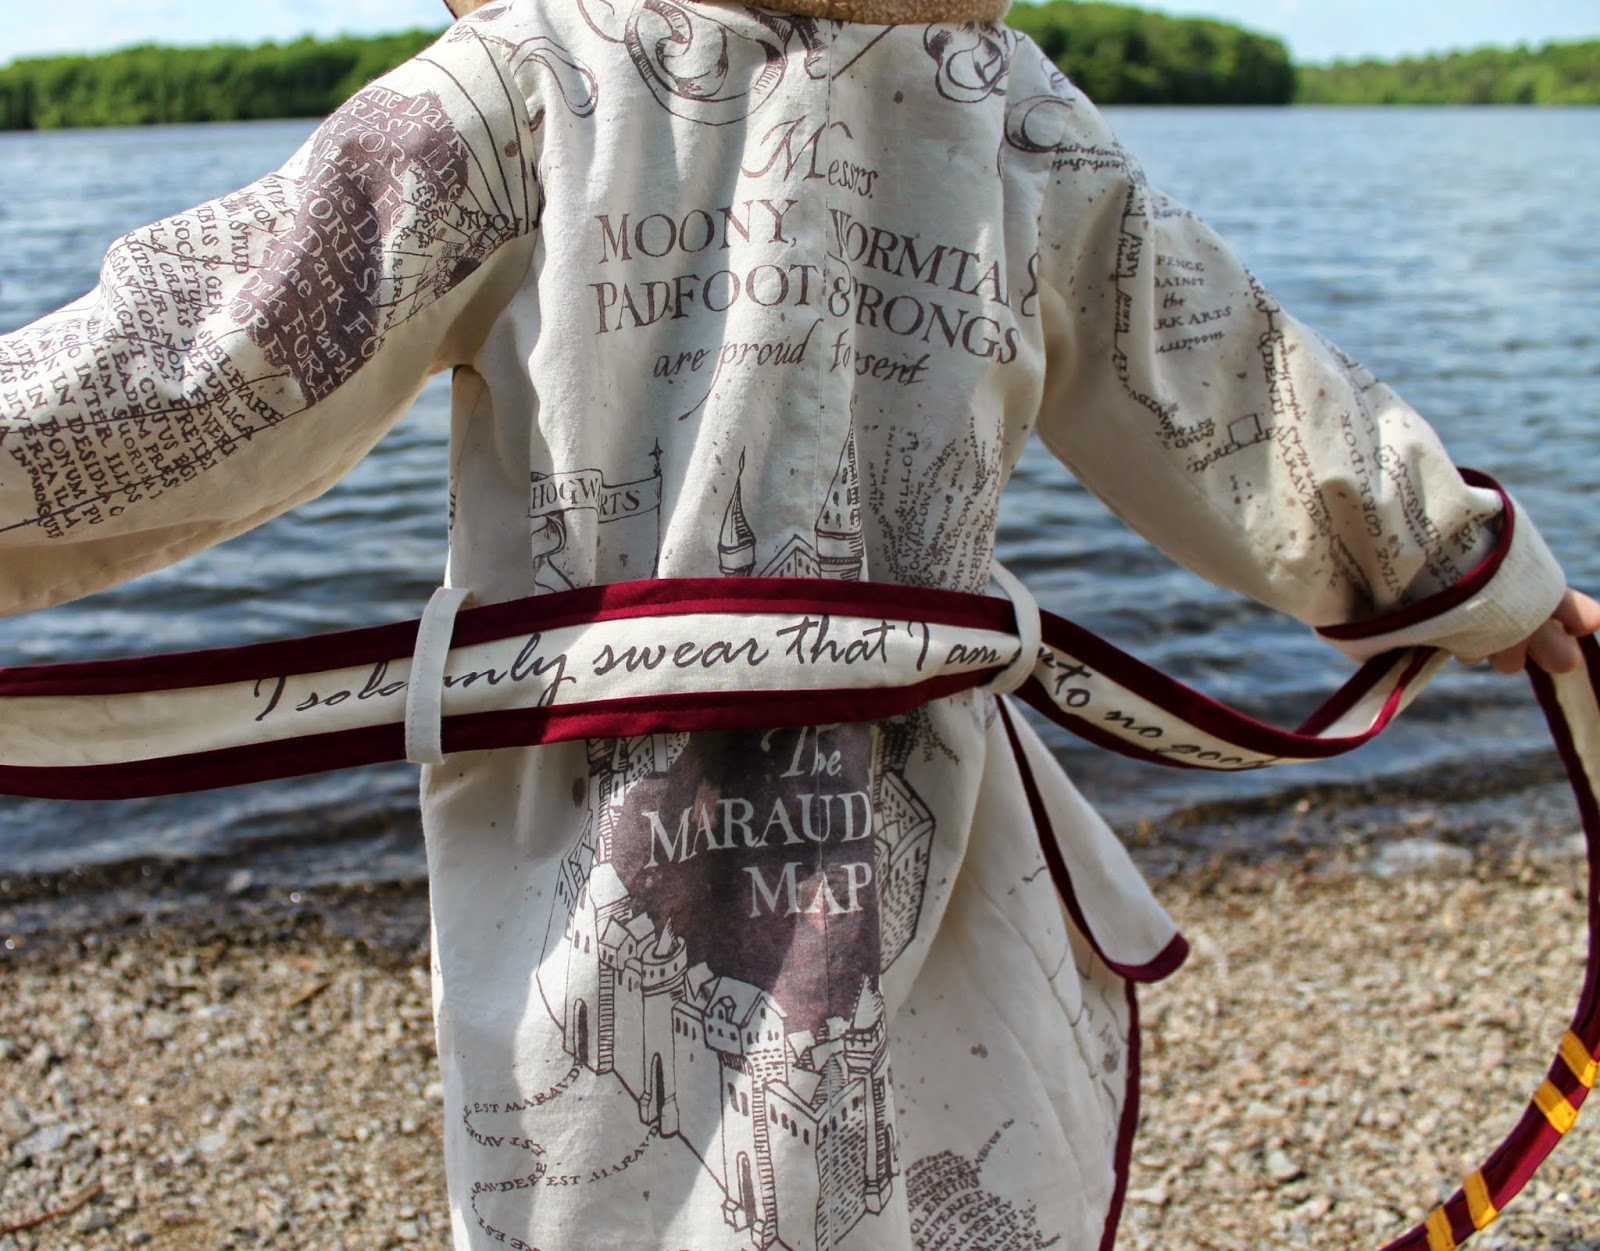 Harry Potter Marauder's Map Beach Robe | The Inspired Wren for CraftingCon